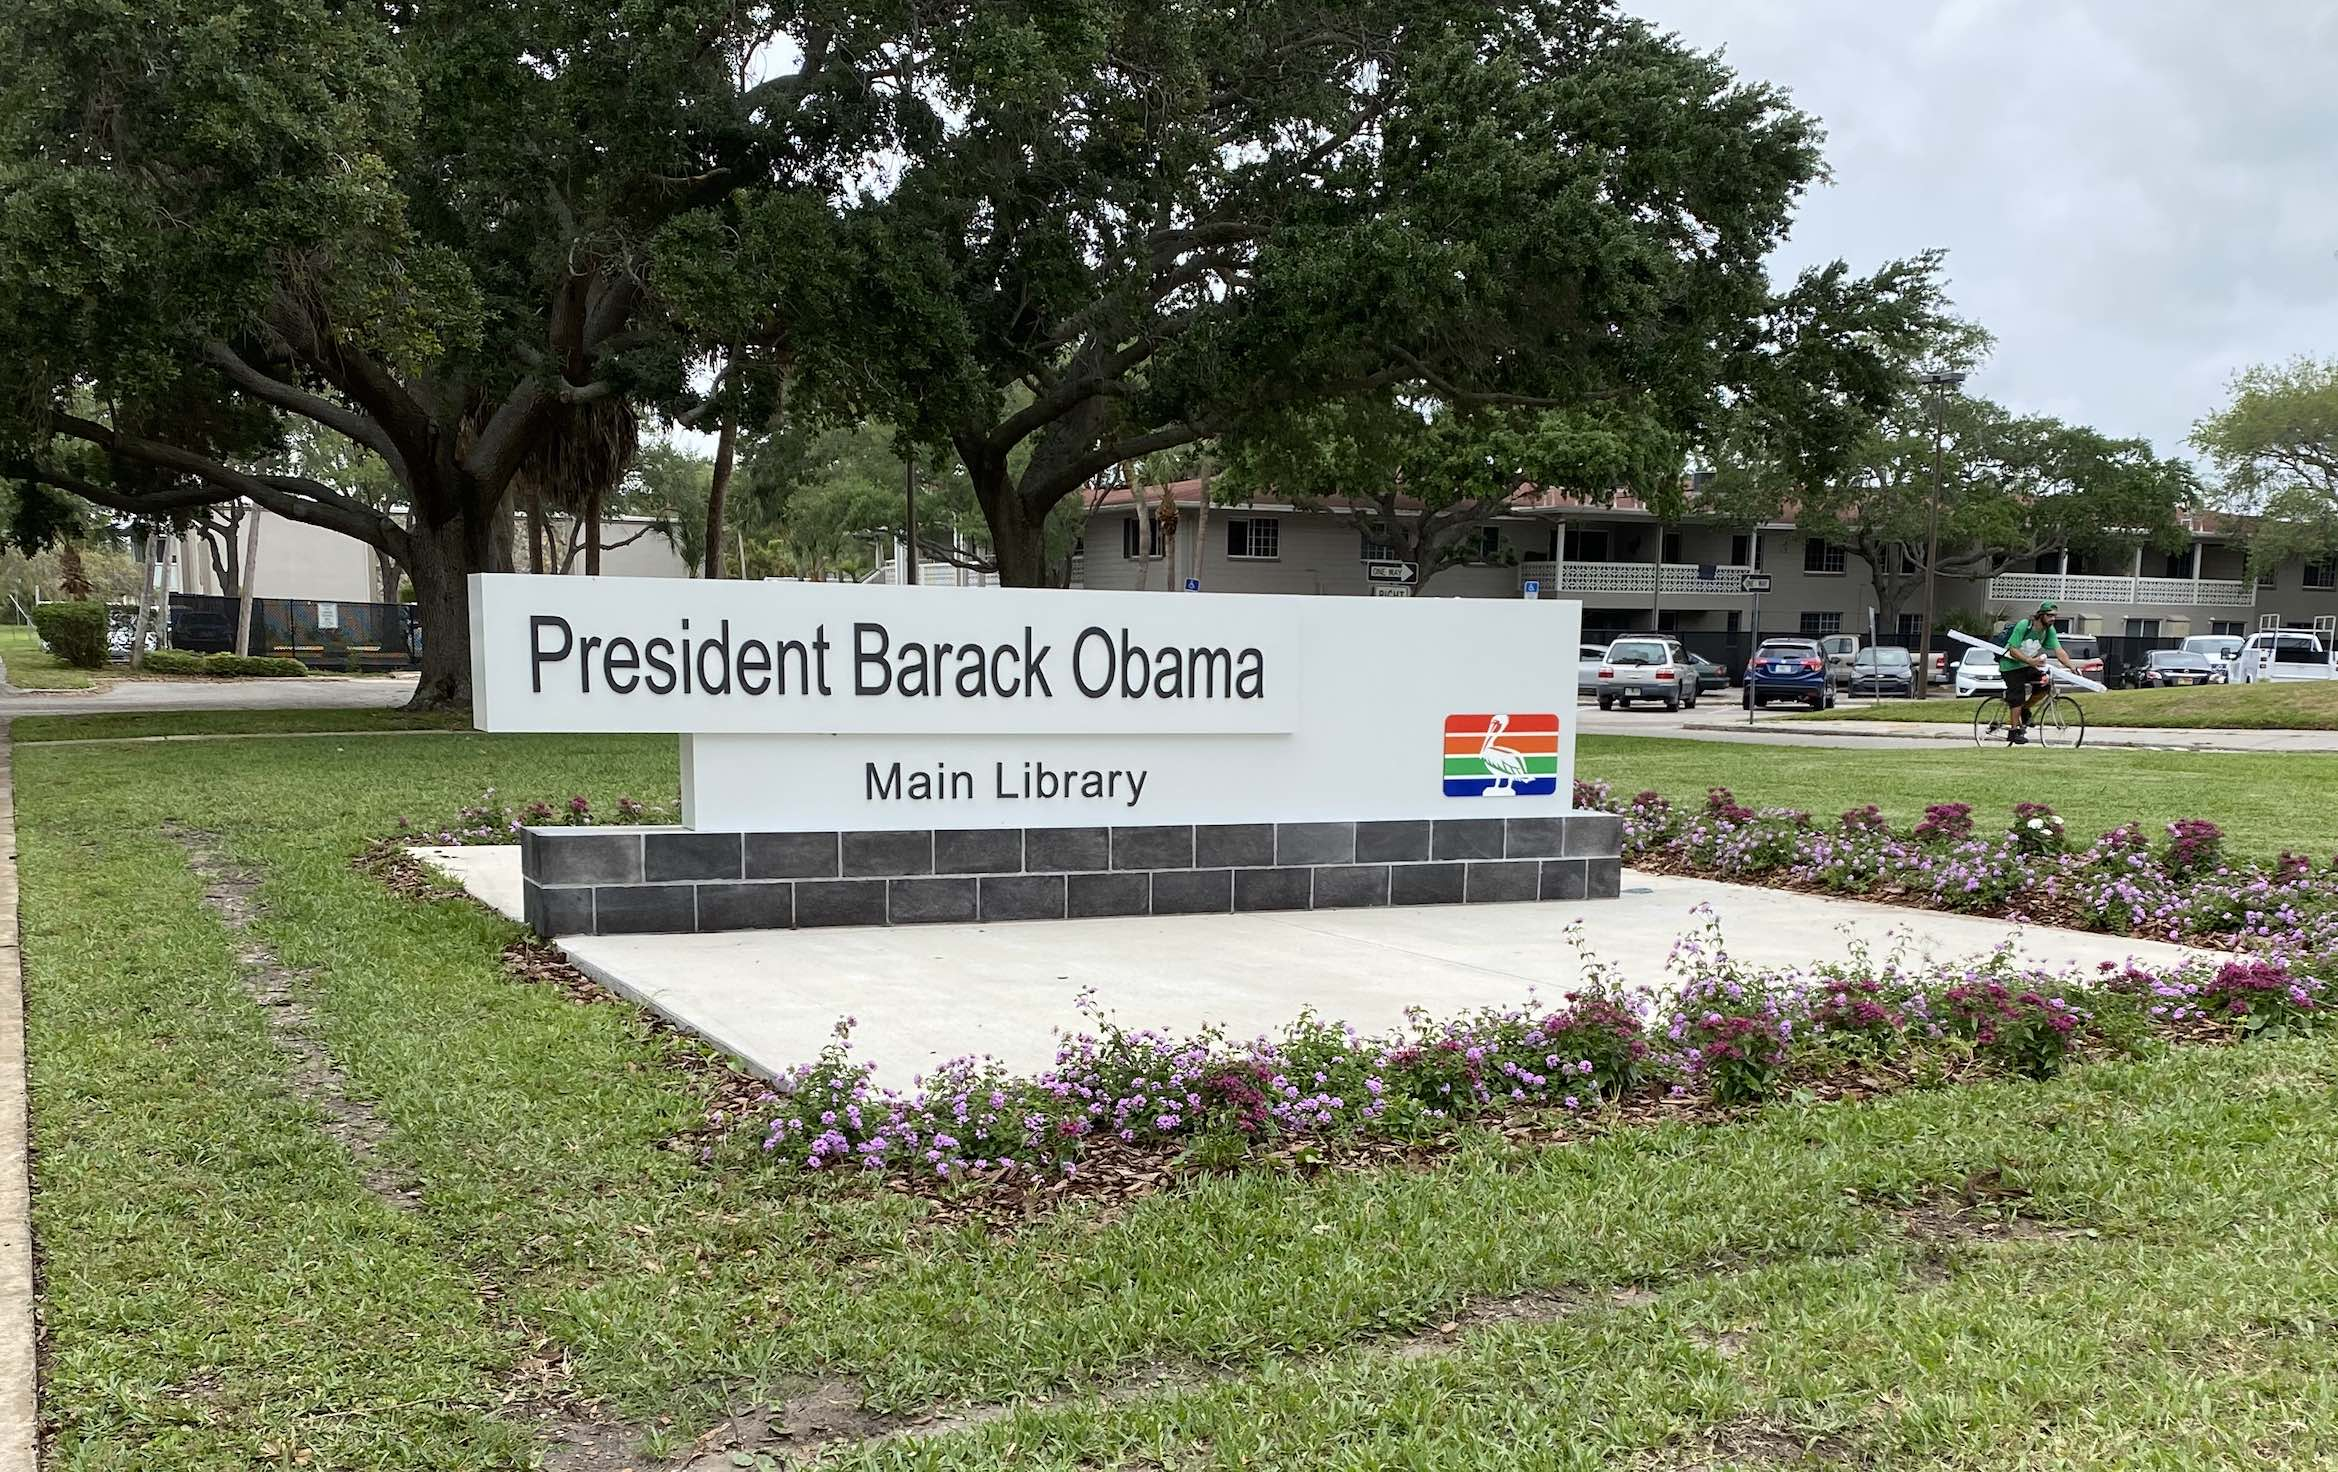 A photo of a sign in the grass for the President Barack Obama Library in St. Petersburg Florida.